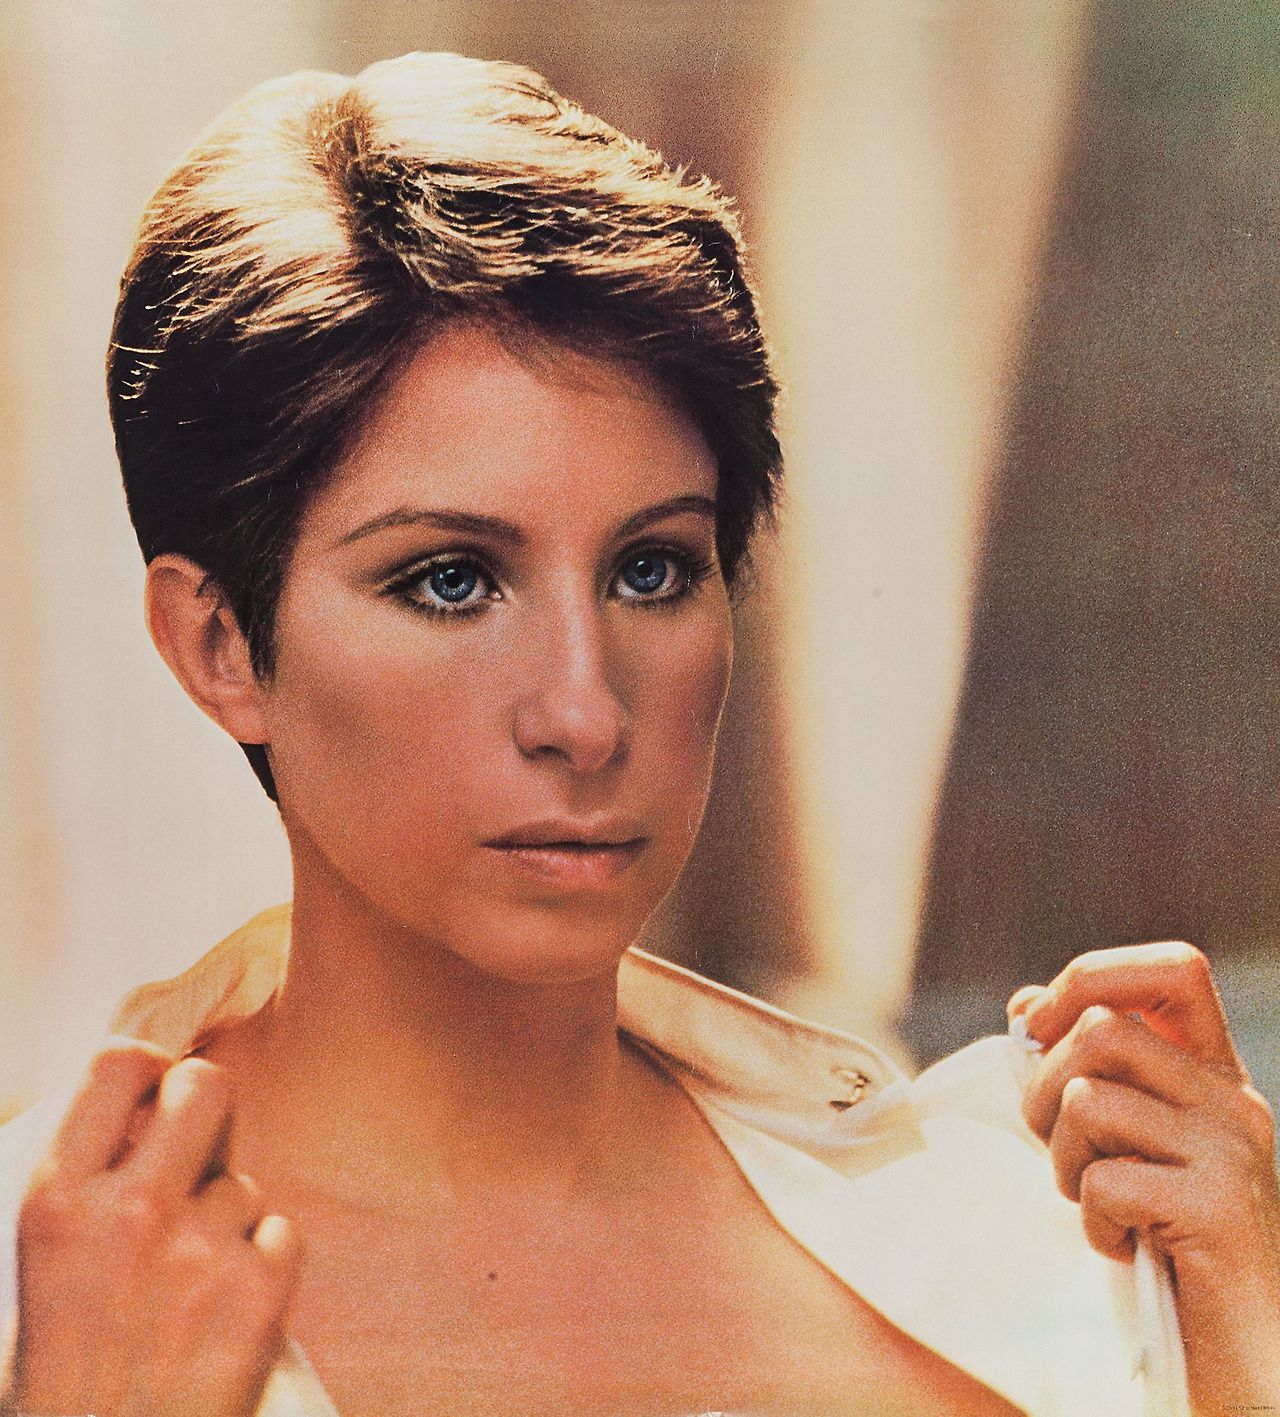 barbra streisand (she looks great with short hair) | barbra